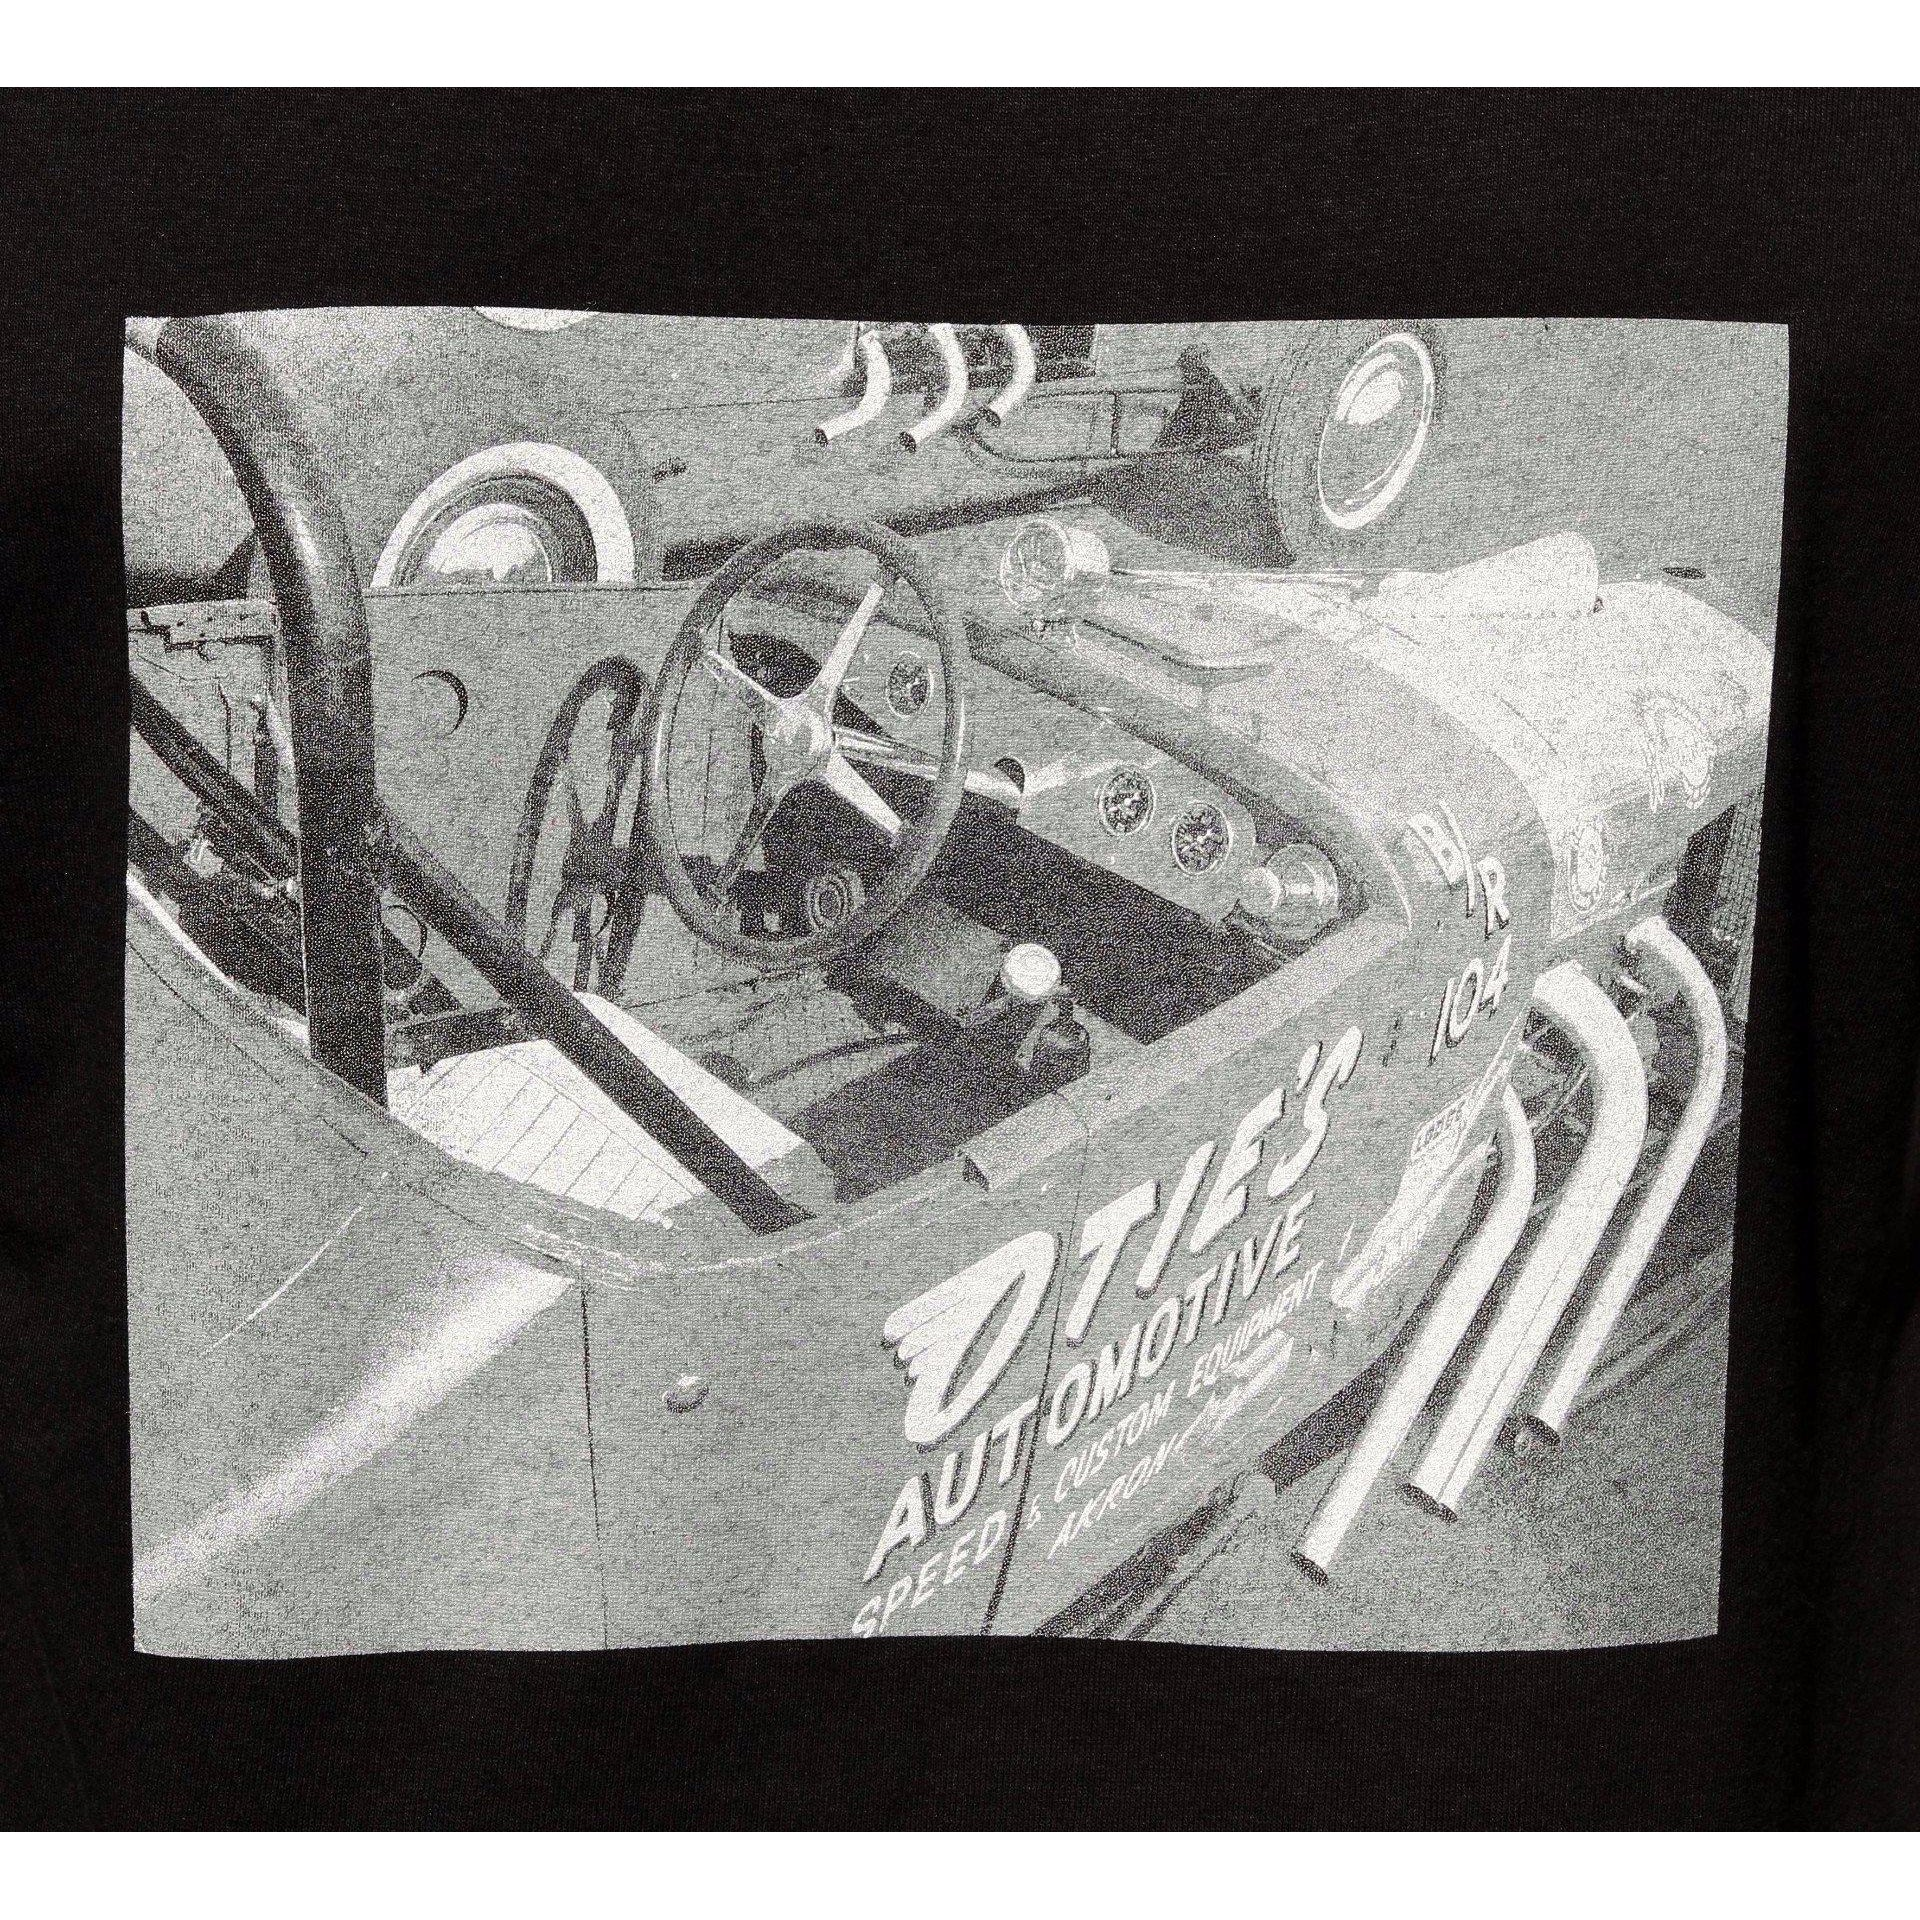 Otie's Automotive Nostalgia Drag Racing 1927 Ford B/Roadster Photo T-shirt